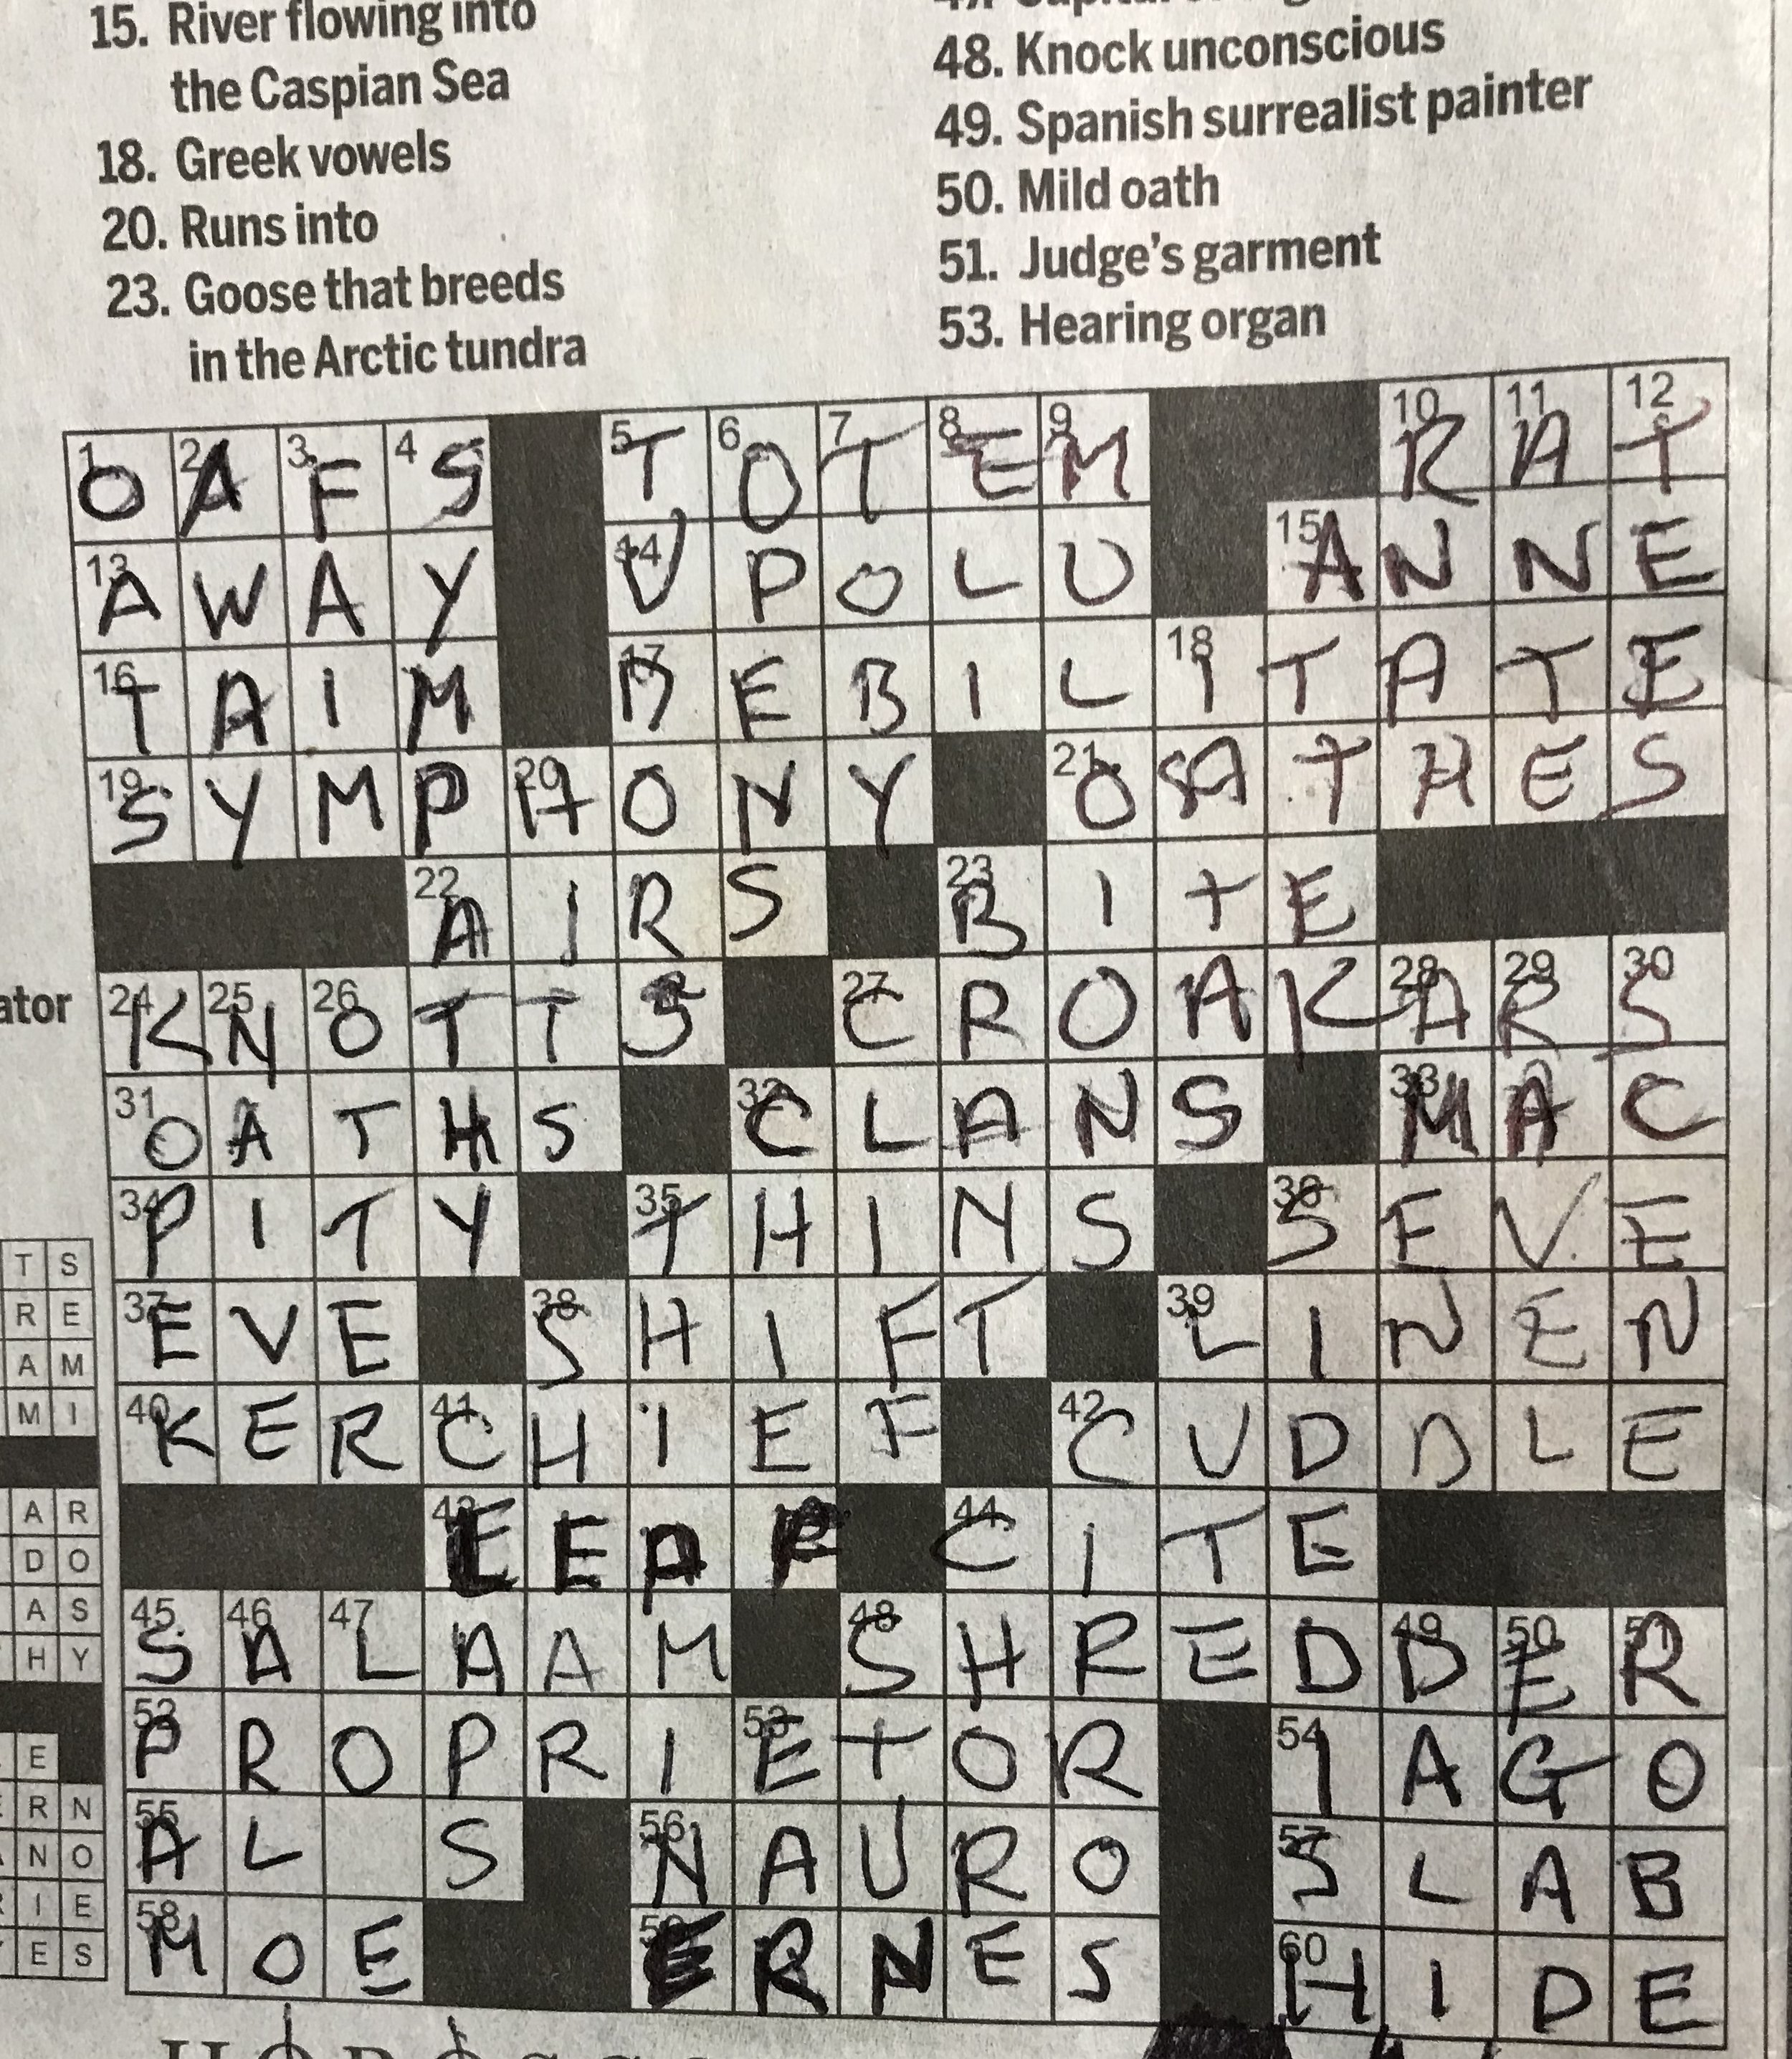 Oh crossword how do I love thee? Let me count the ways.